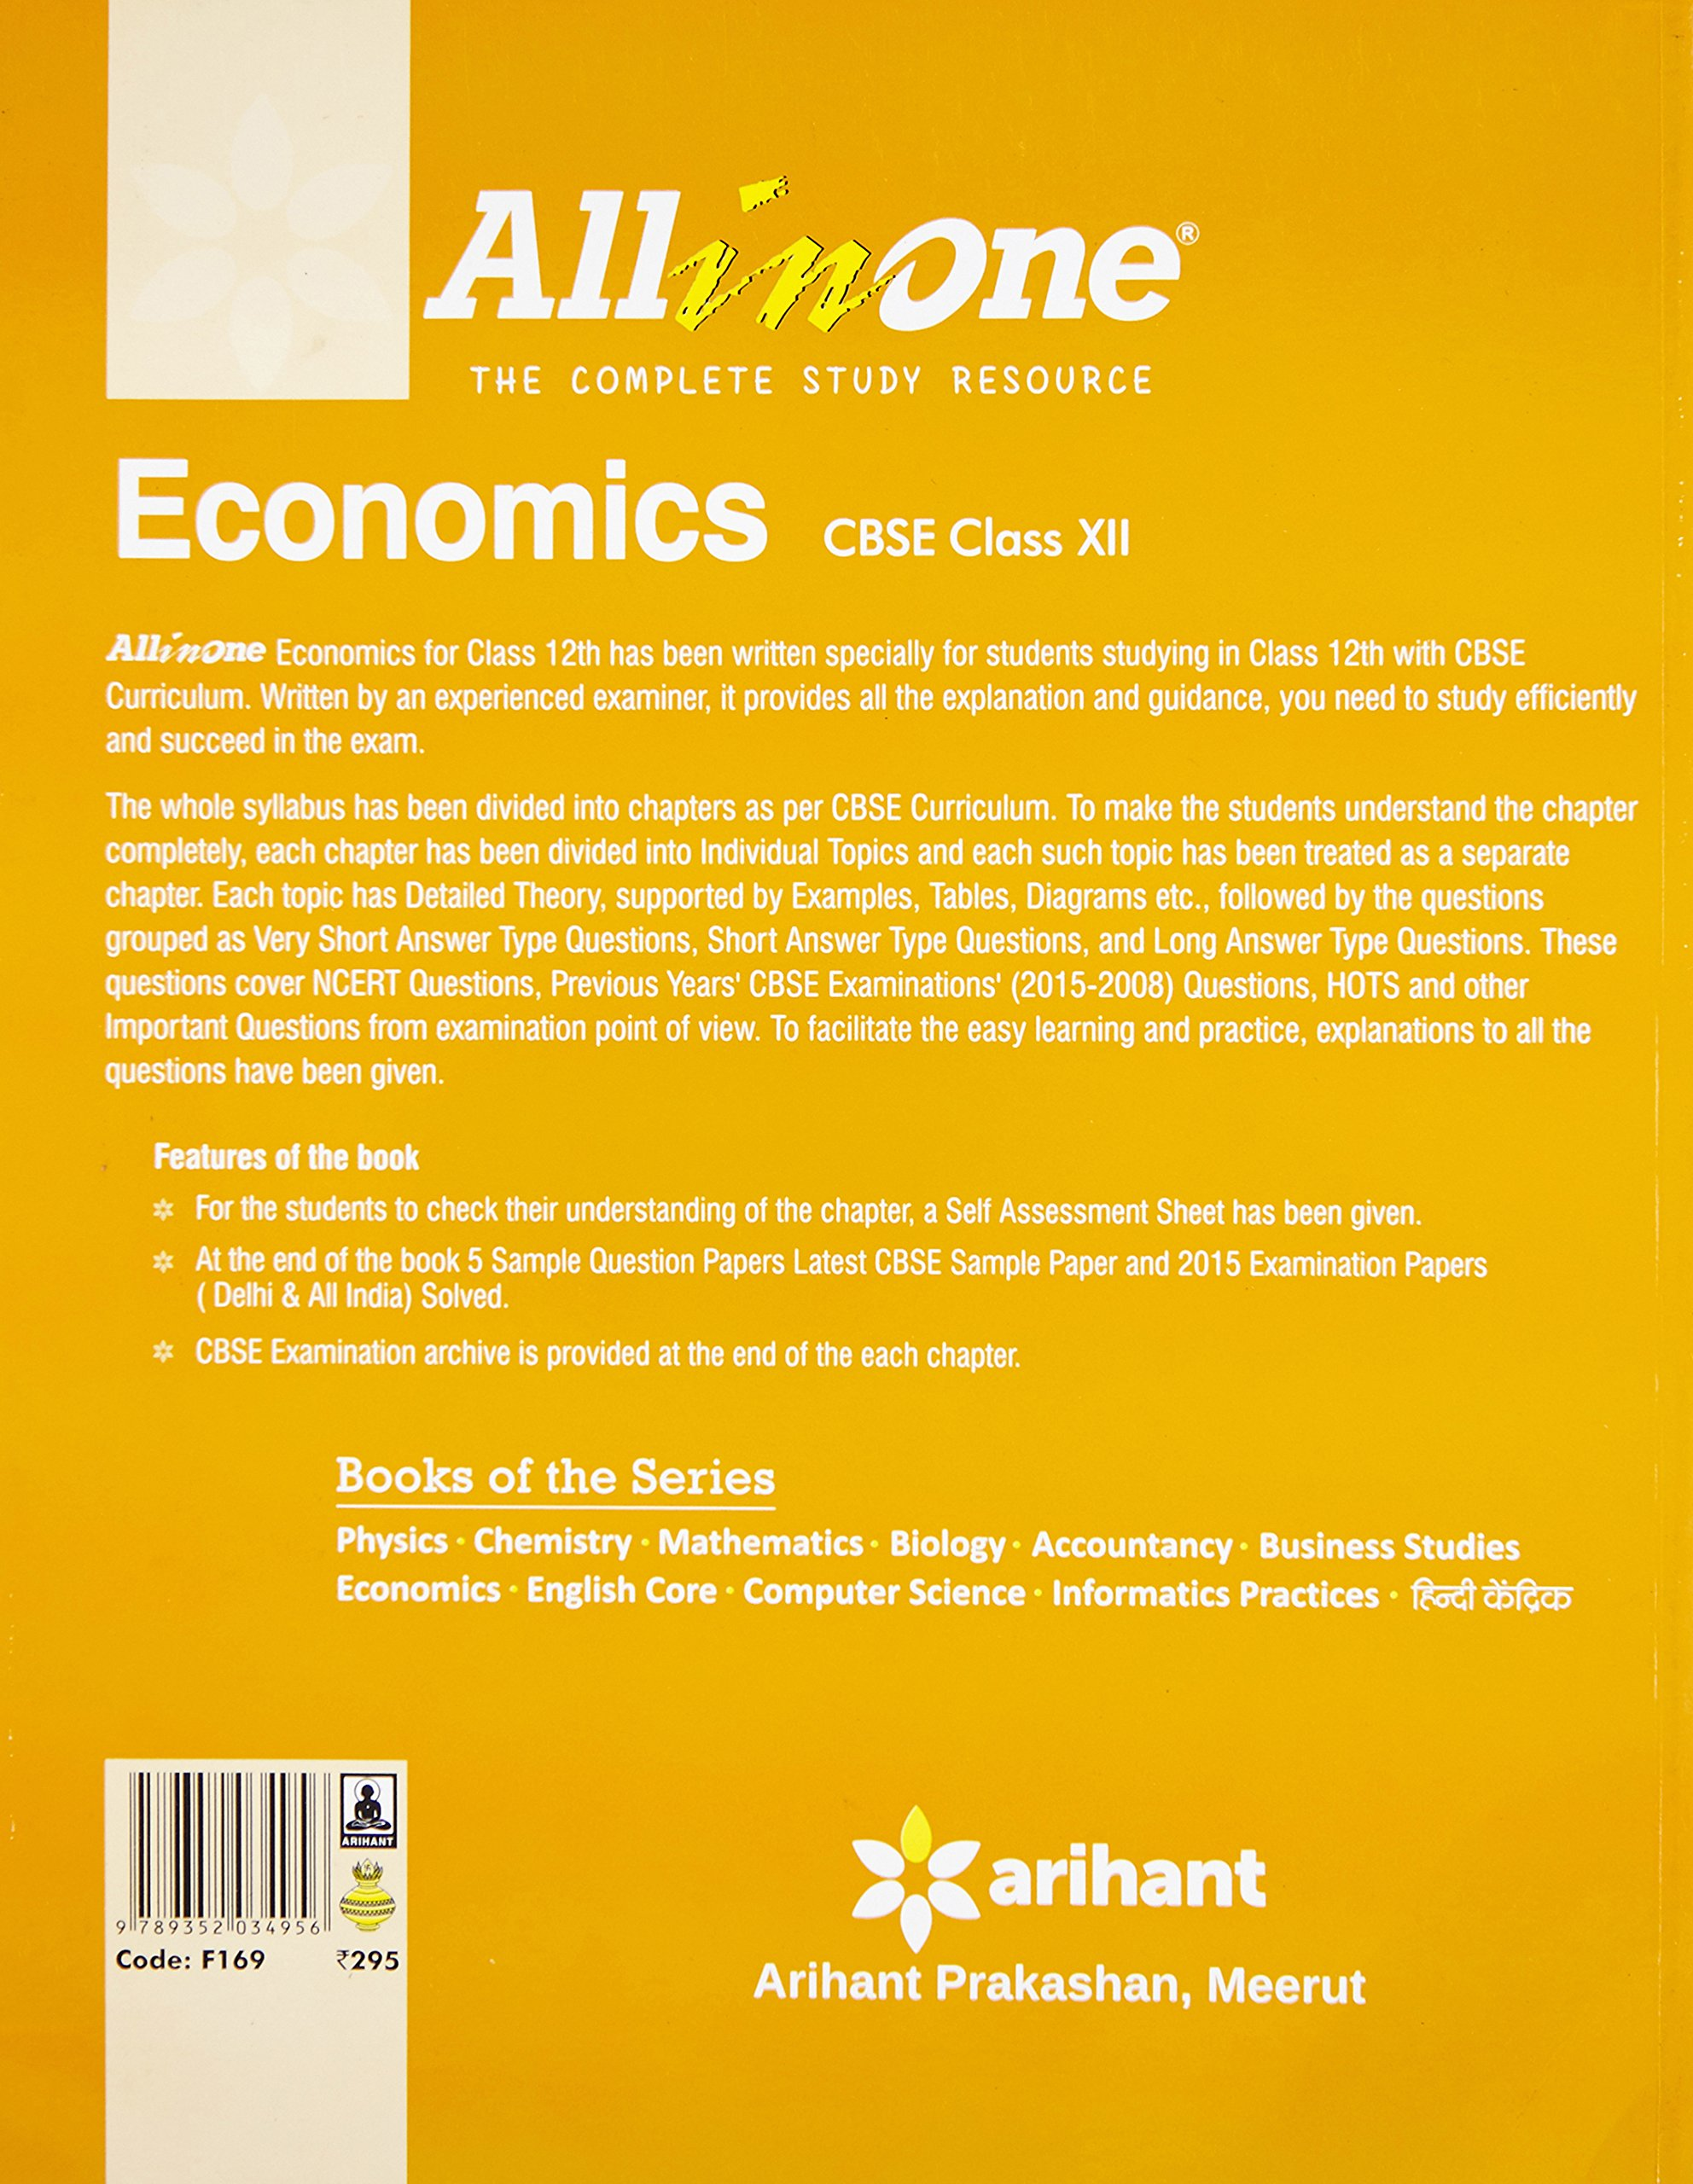 cbse class 11 economics case study Ncert solutions for class 11th: ch 2 indian economy 1950-1990 economics ncert solutions for class 11th: this has been observed in the case of developed.